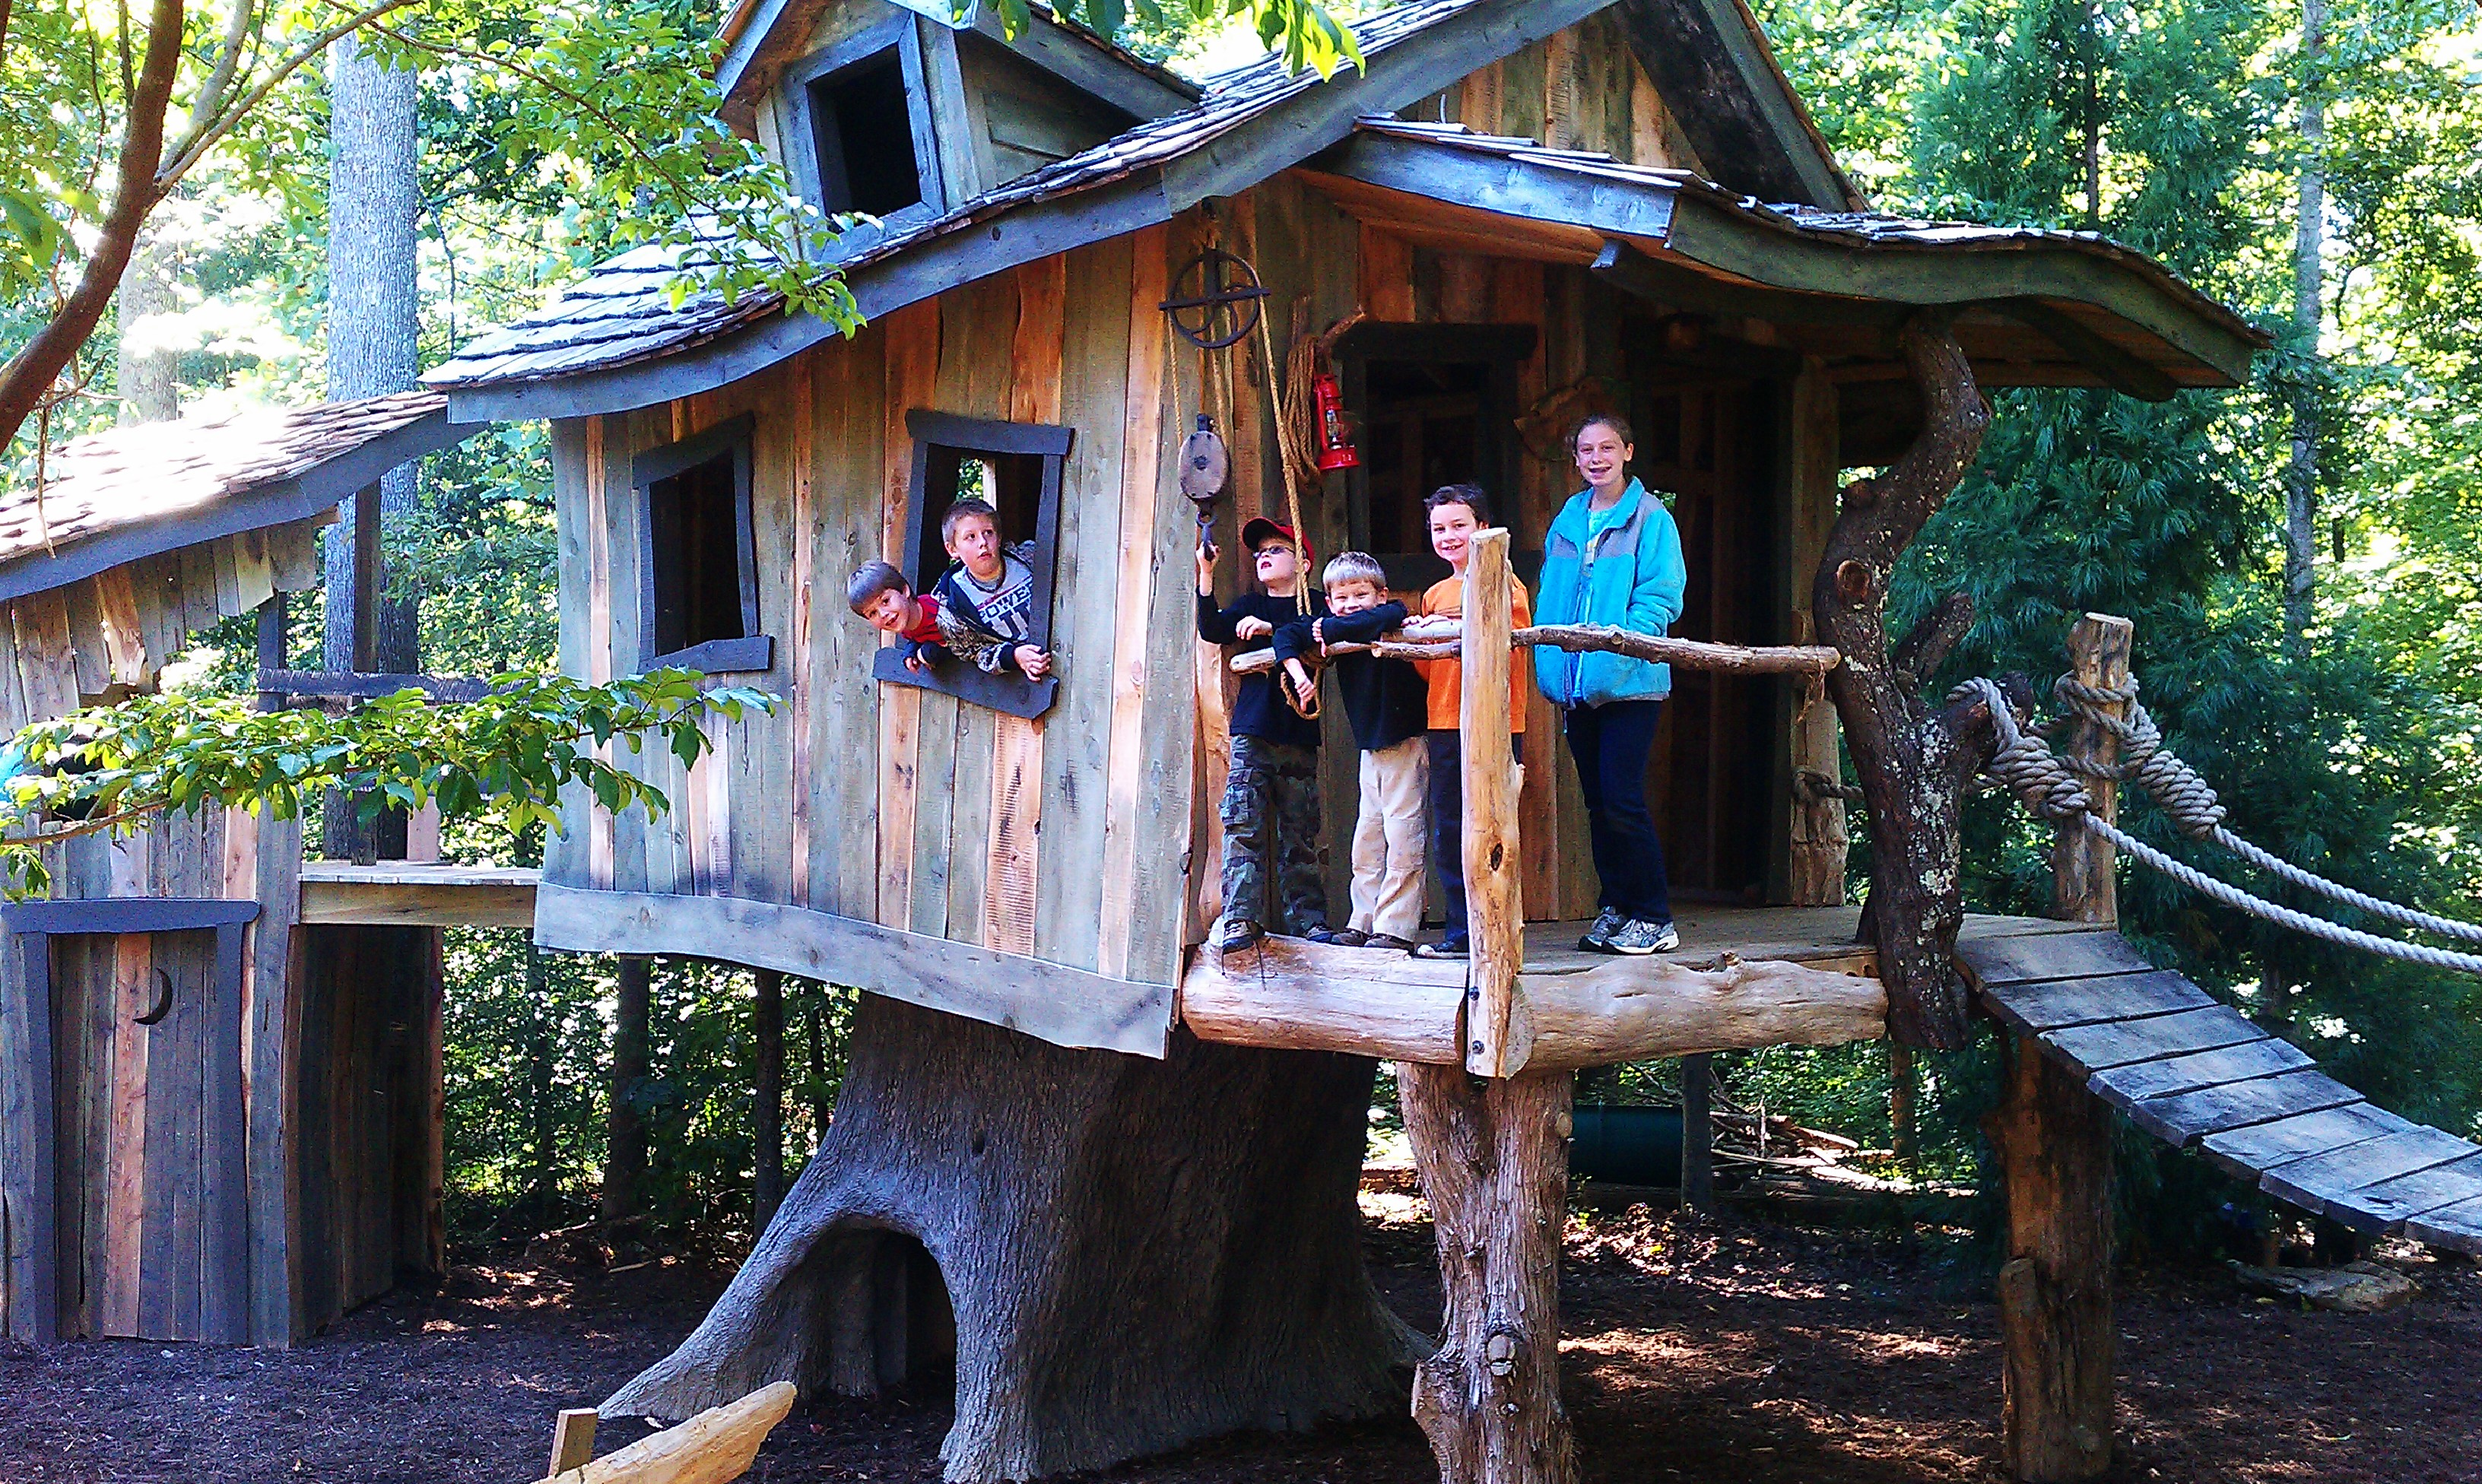 Creative Garden Spaces Inc, Oak Ridge NC, custom tree house construction, playspace, custom play area, custom woodwork